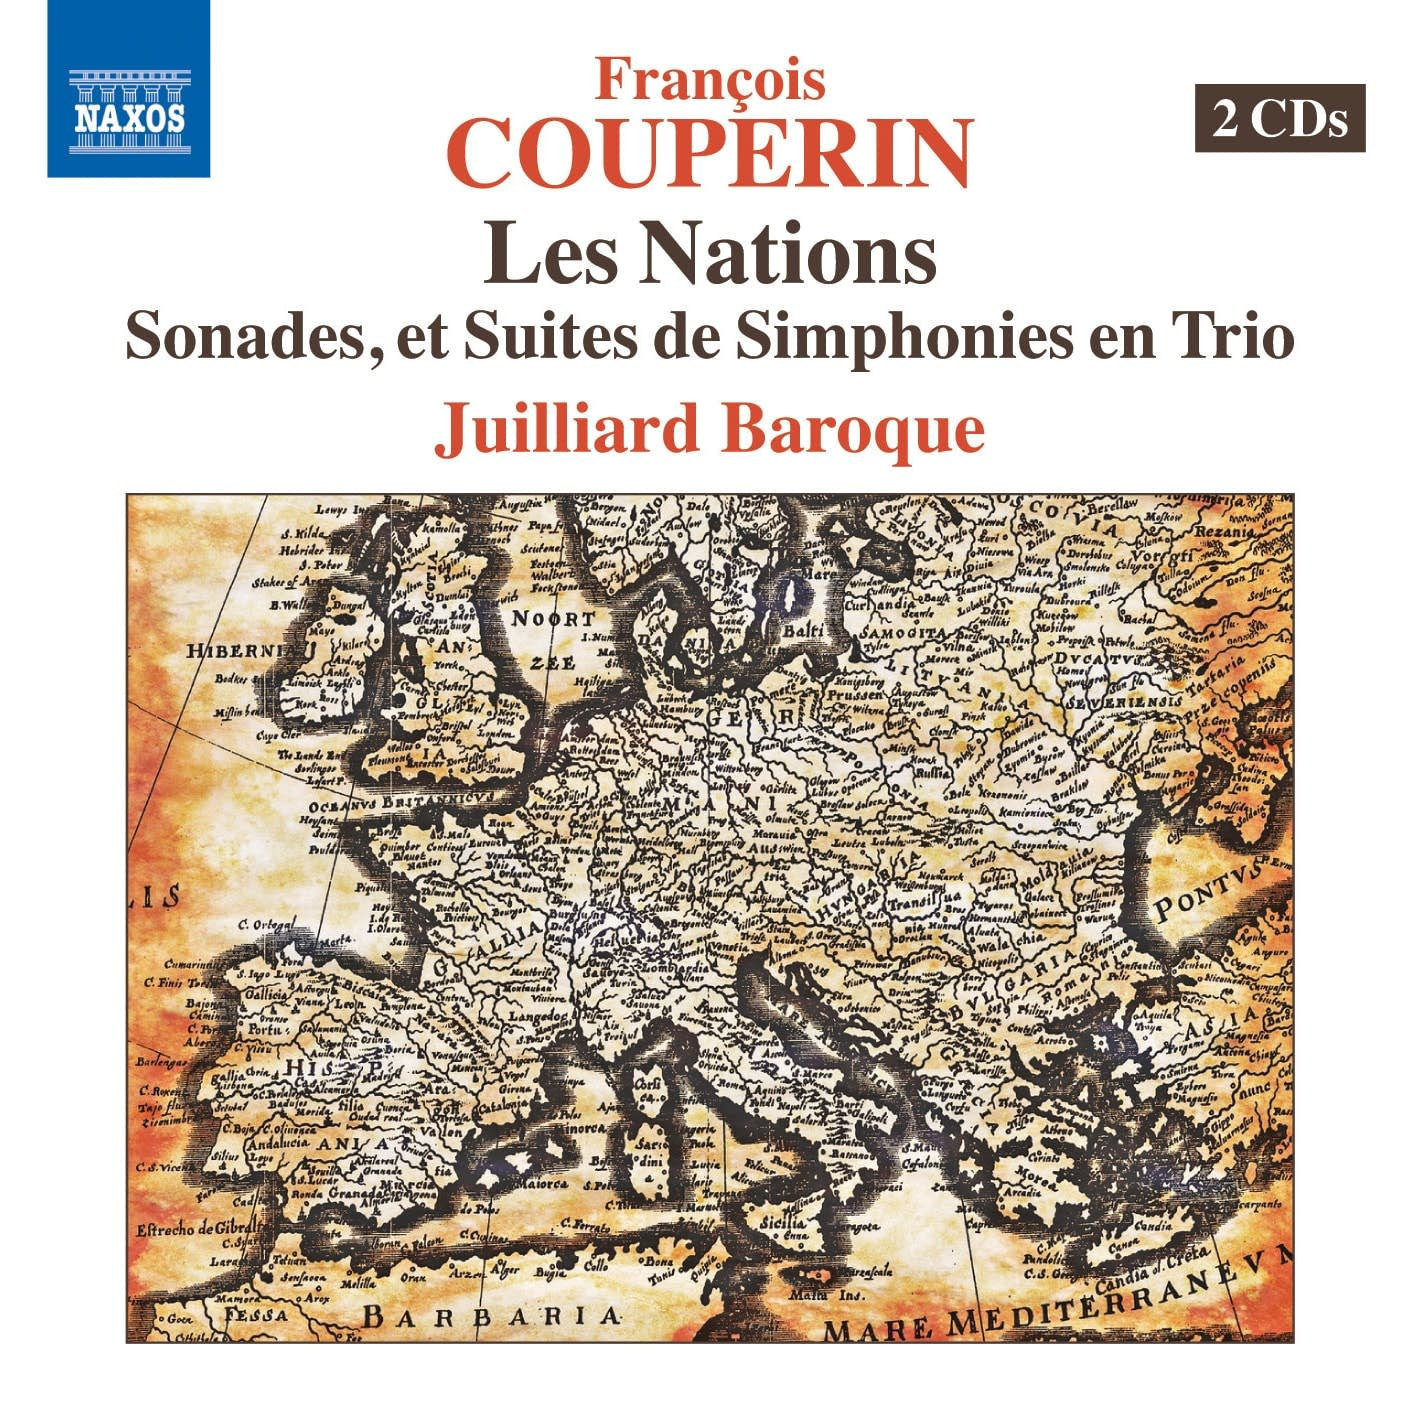 Francois Couperin - Les Nations, 4th Ordre,